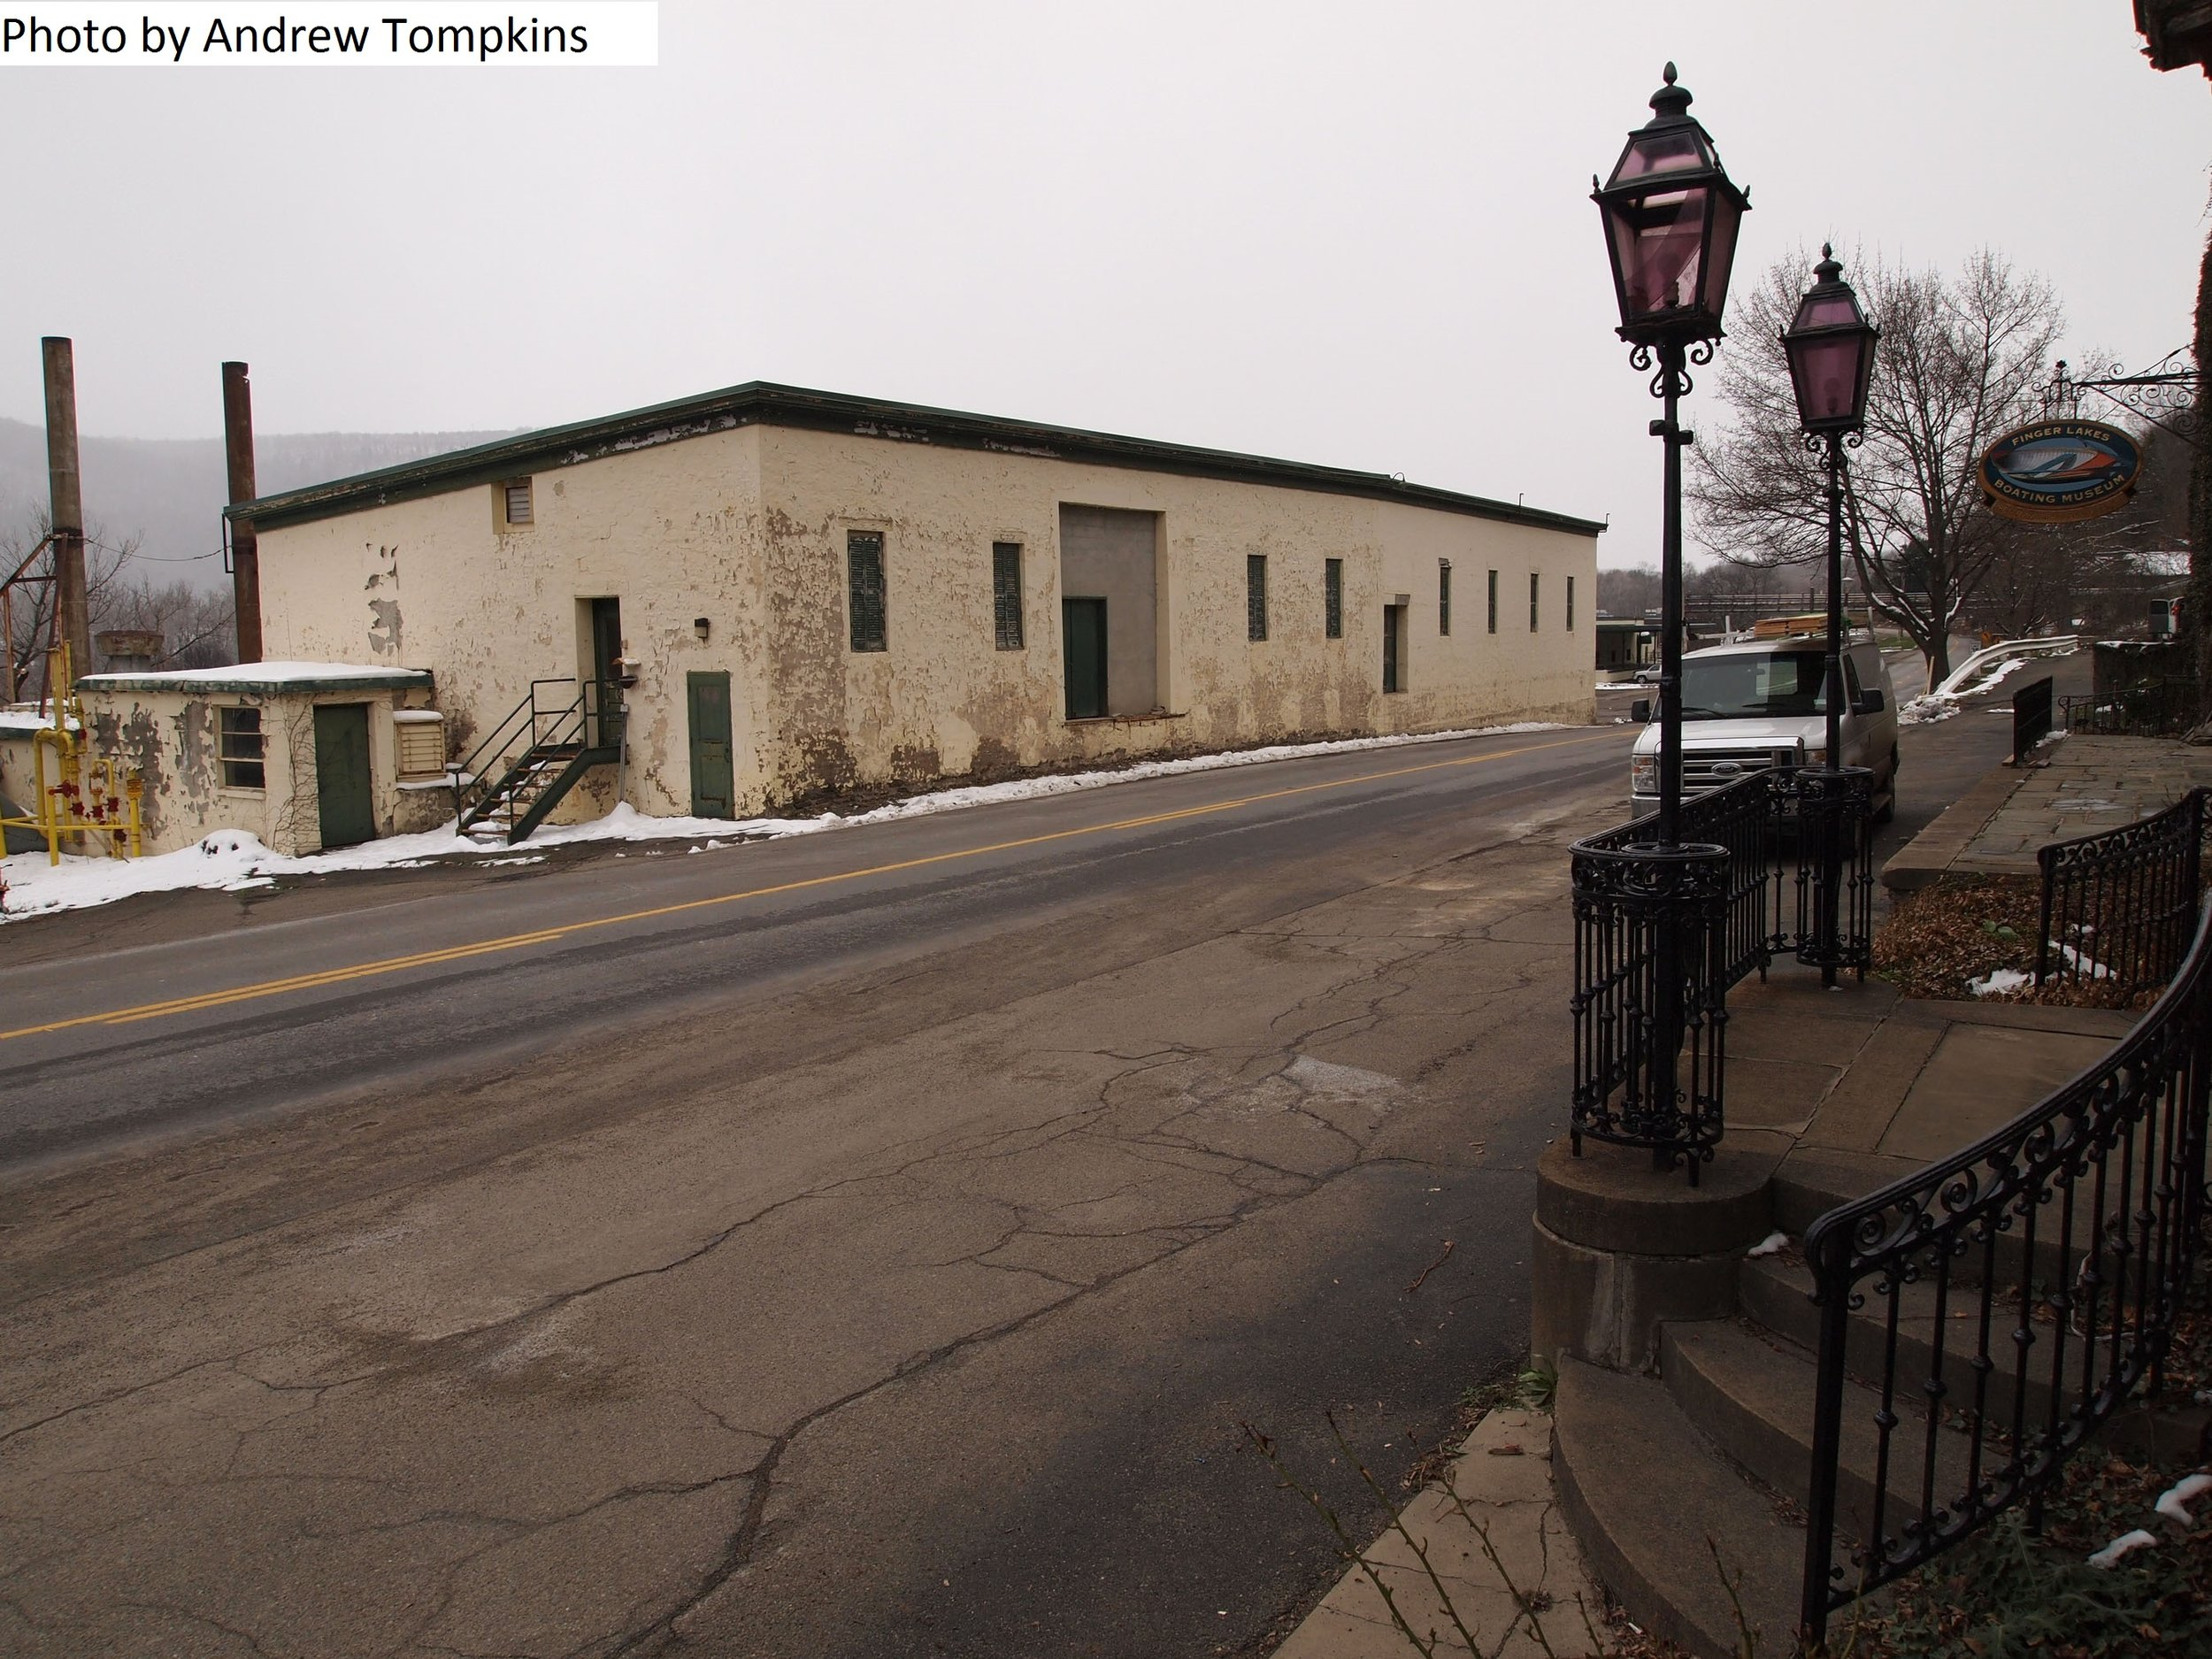 Finger Lakes Boating Museum, Taylor Wine Company Building #5